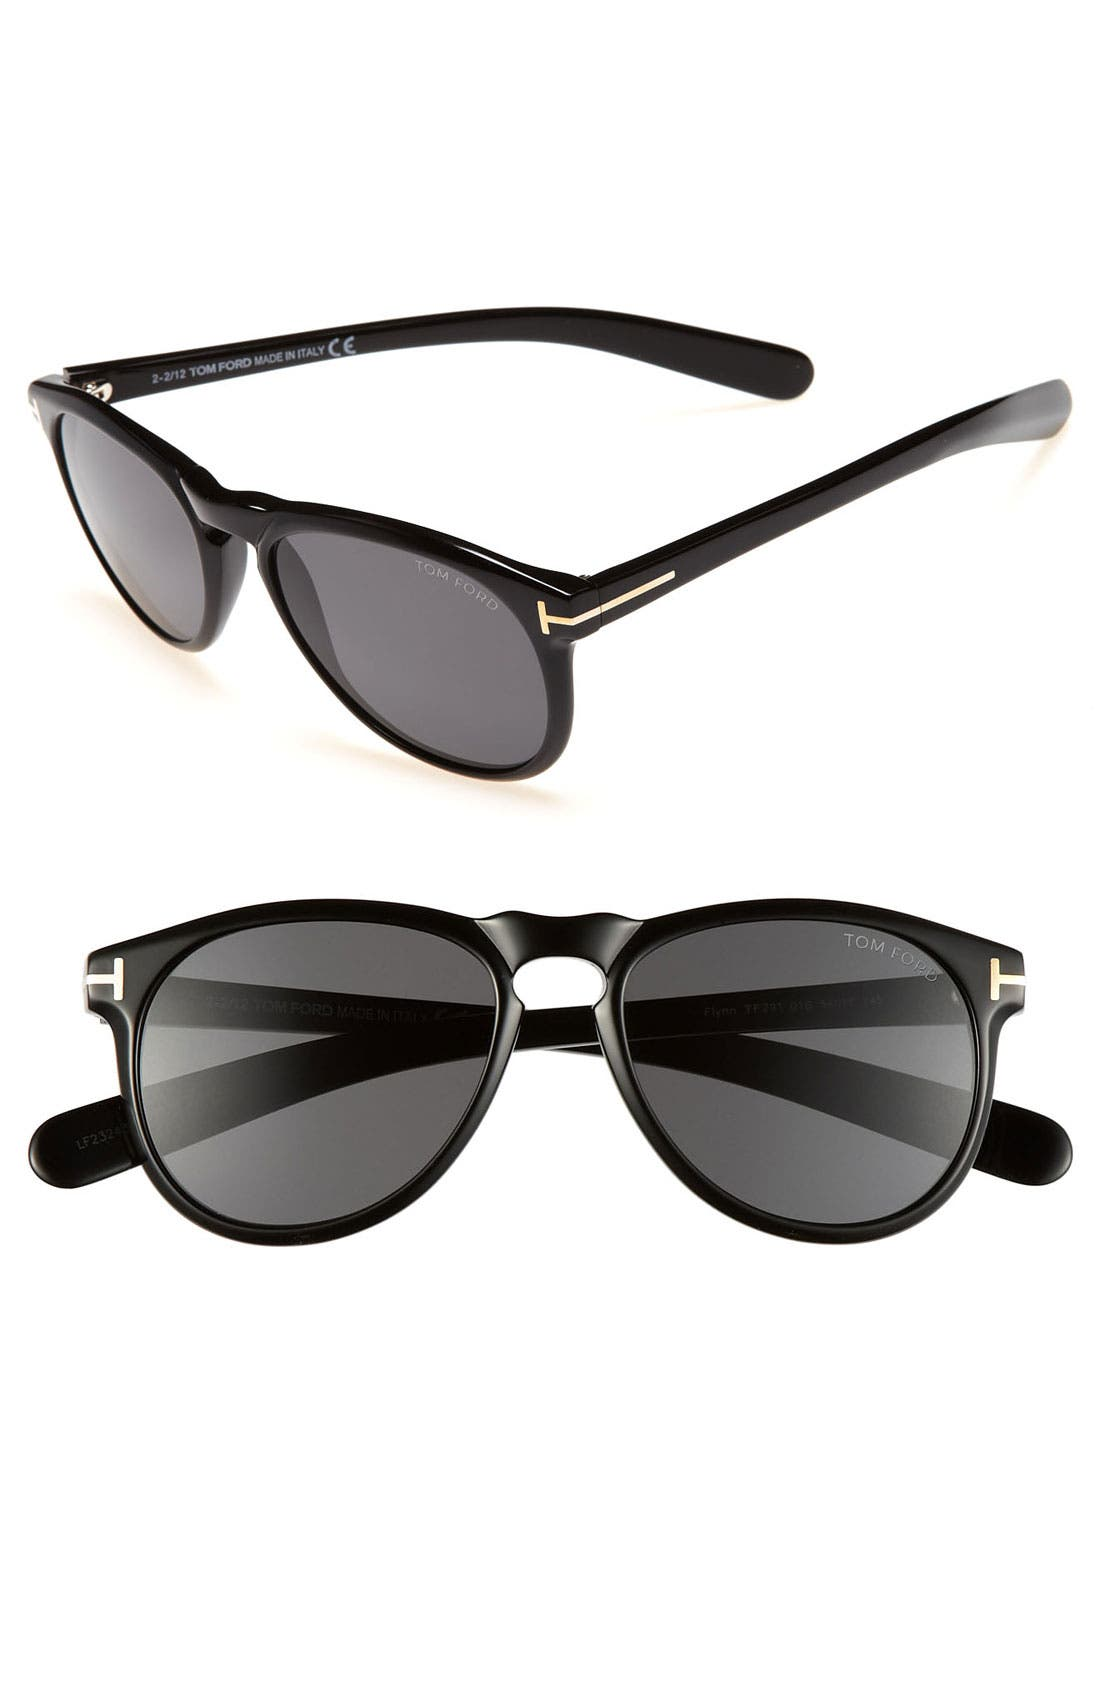 Main Image - Tom Ford 'Flynn' 54mm Sunglasses